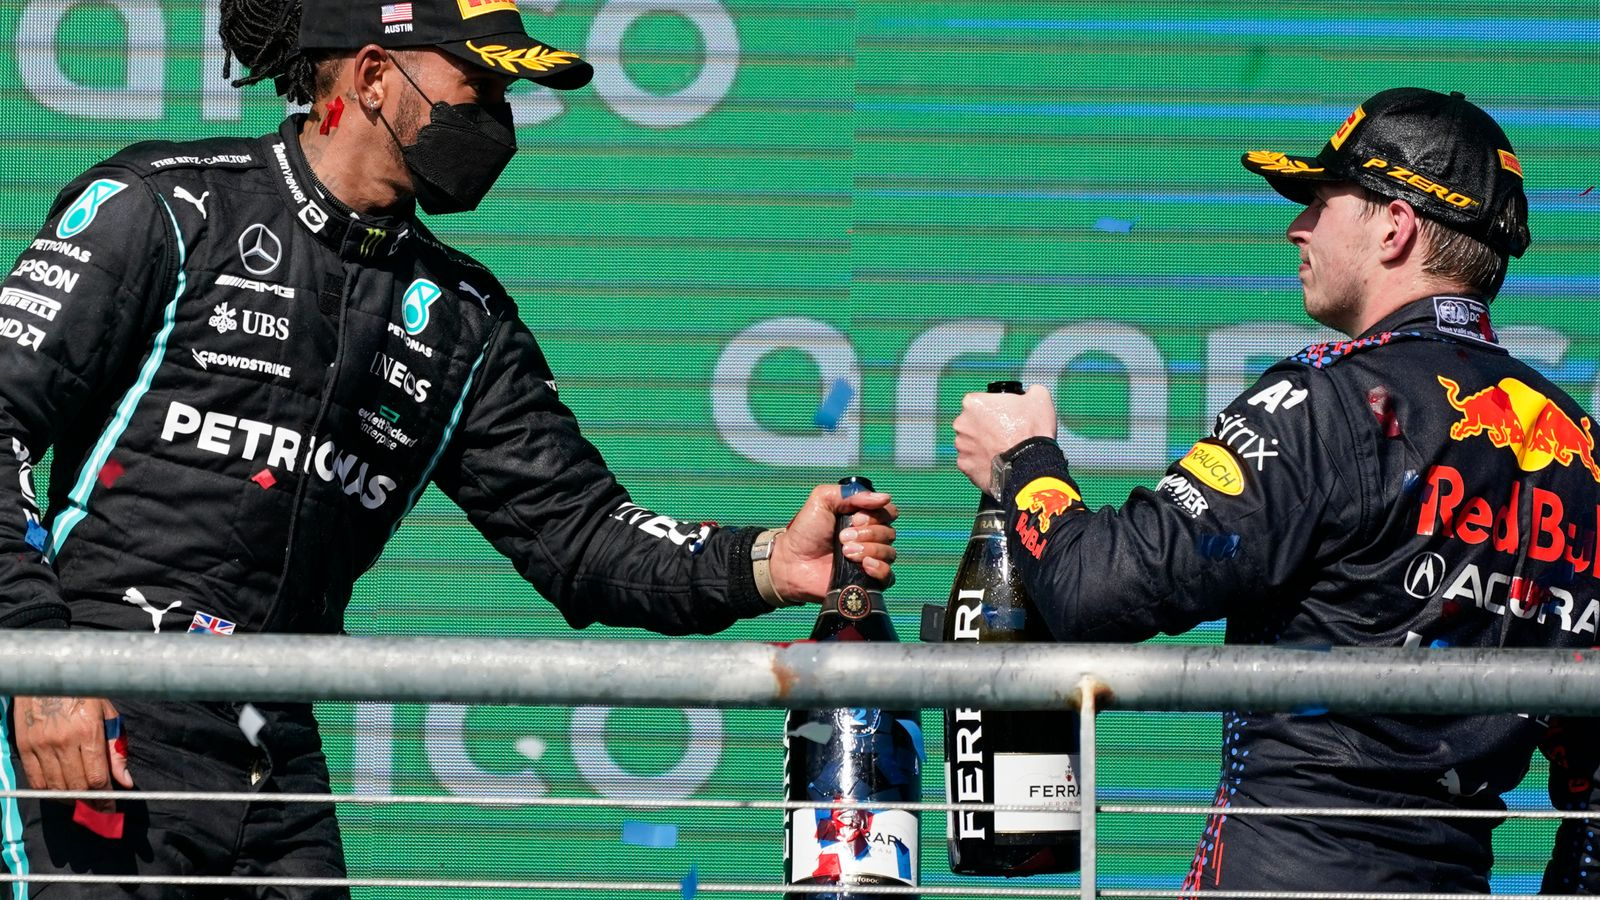 United States GP: Max Verstappen and Red Bull on late Lewis Hamilton fears after 'aggressive' strategy